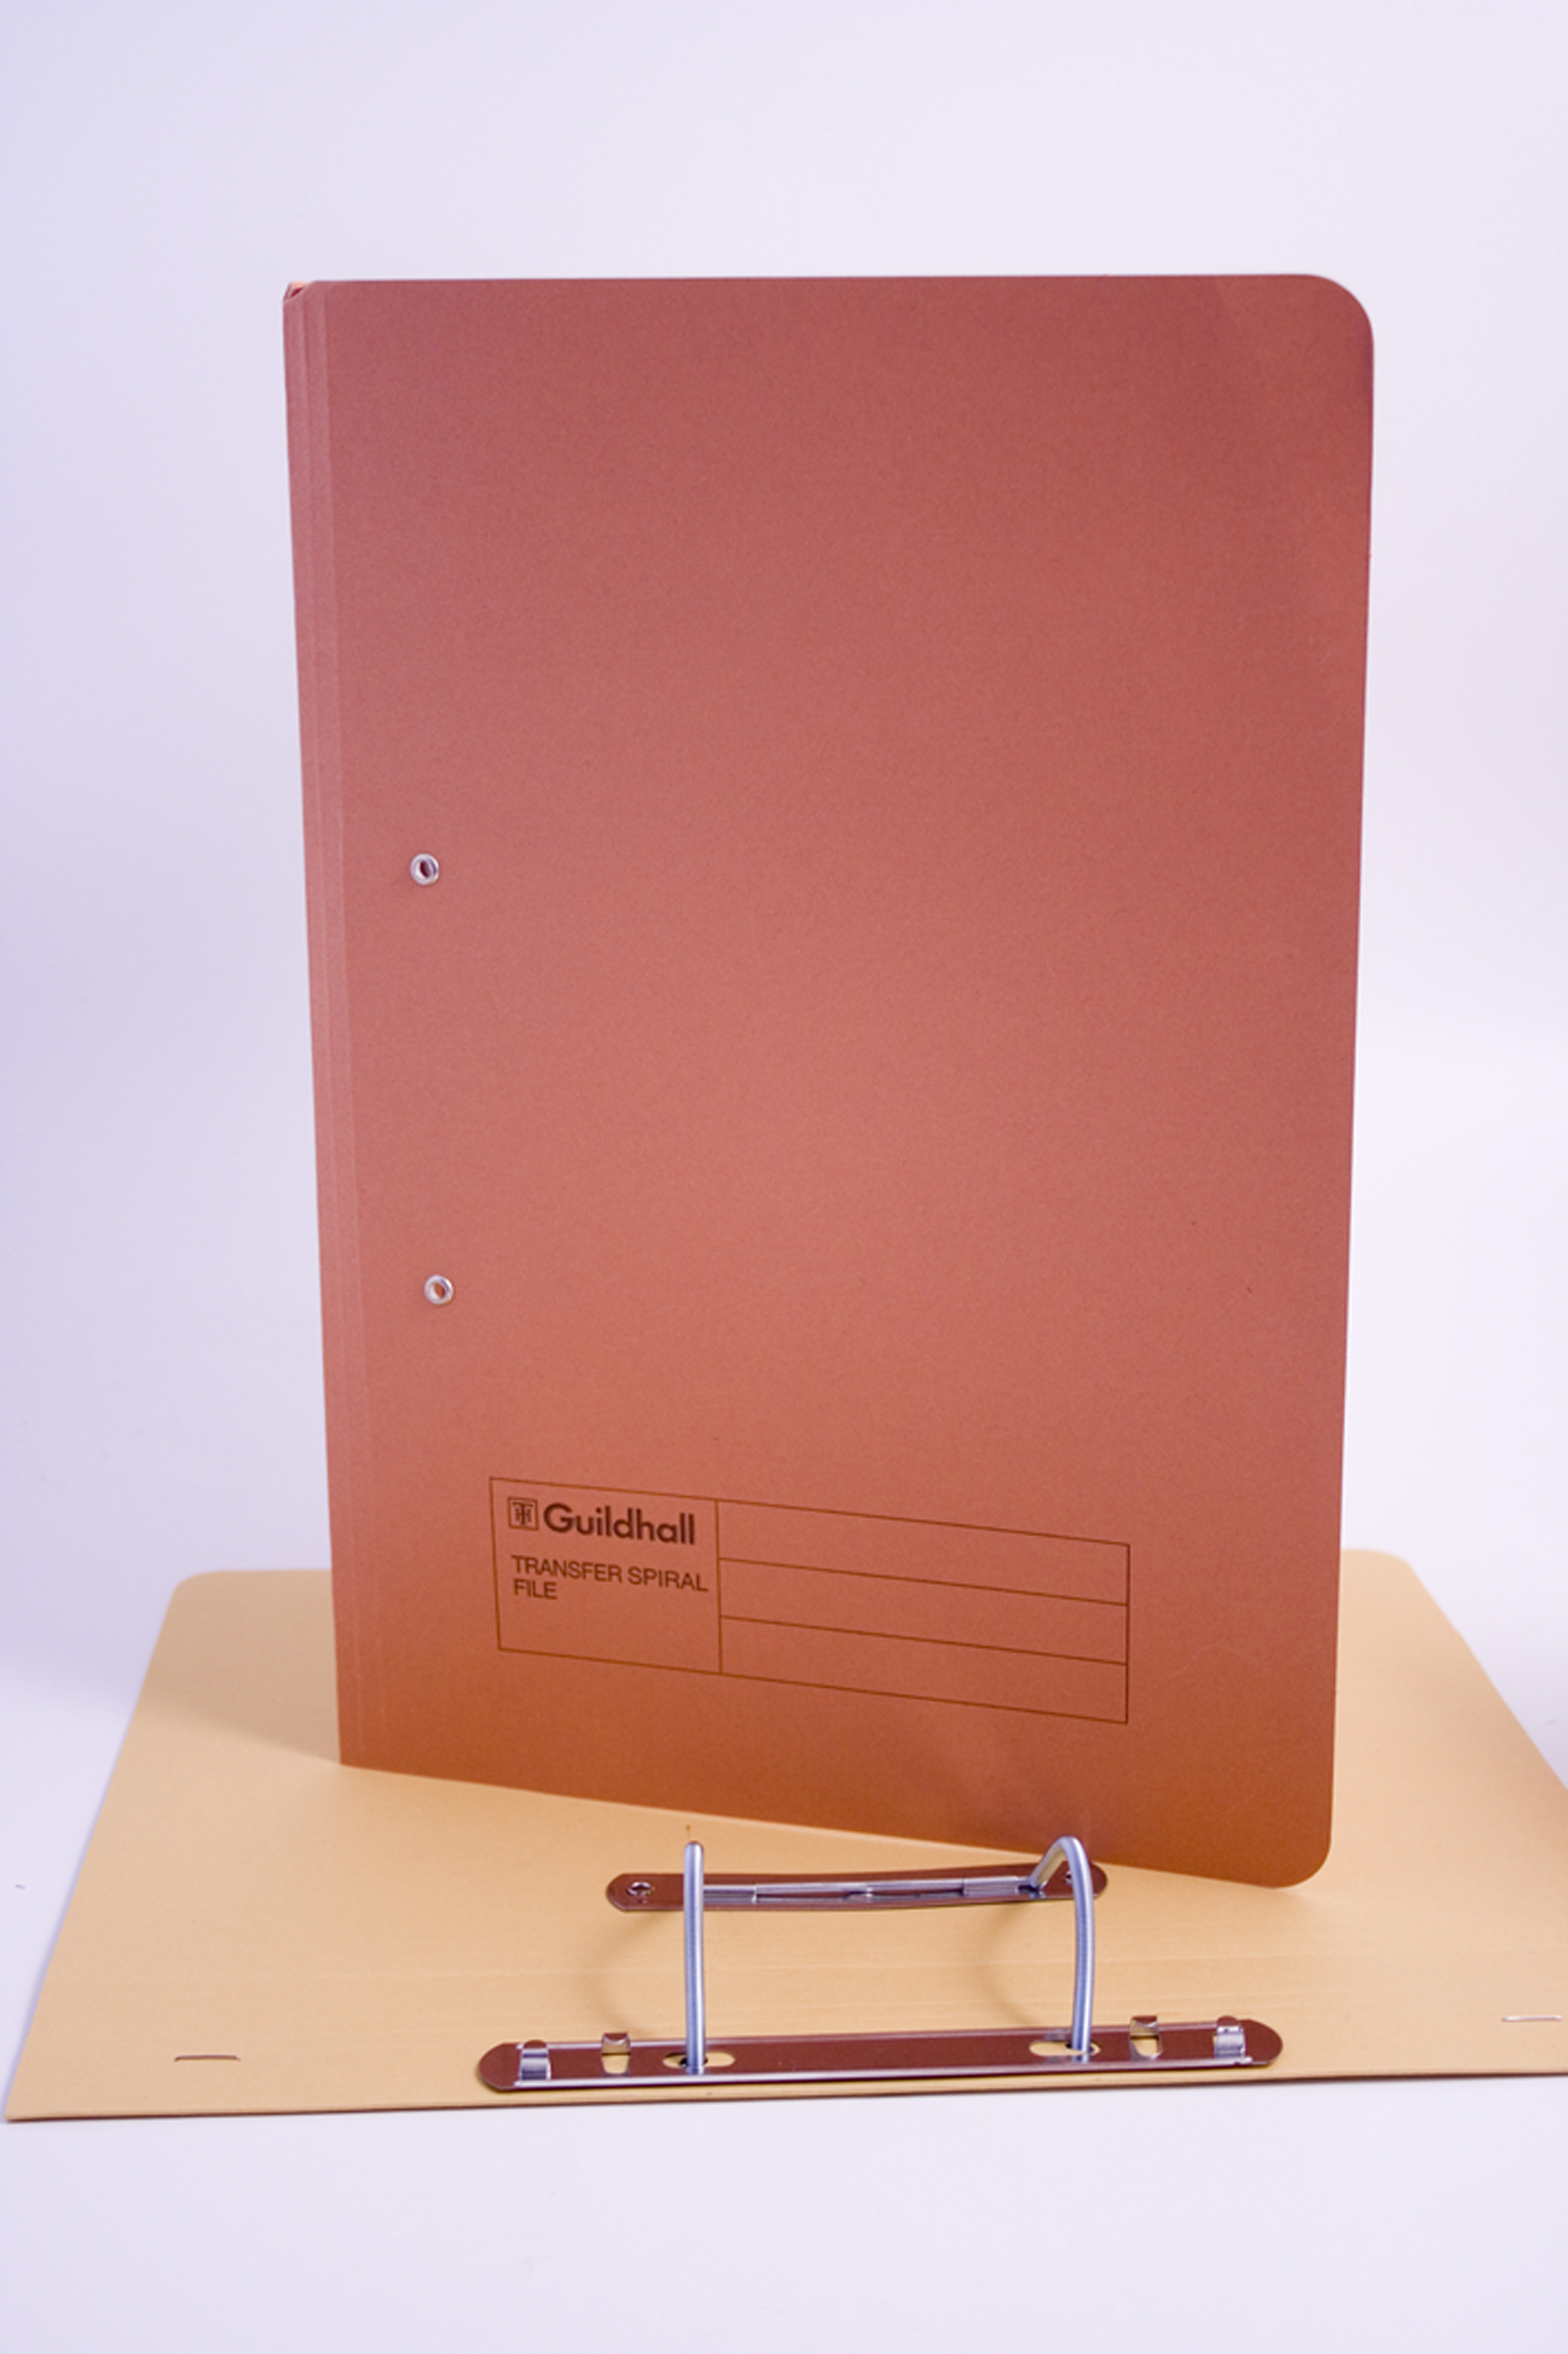 Guildhall Heavyweight Transfer Spiral File 420gsm Foolscap Orange (Pack of 25) 211/7004